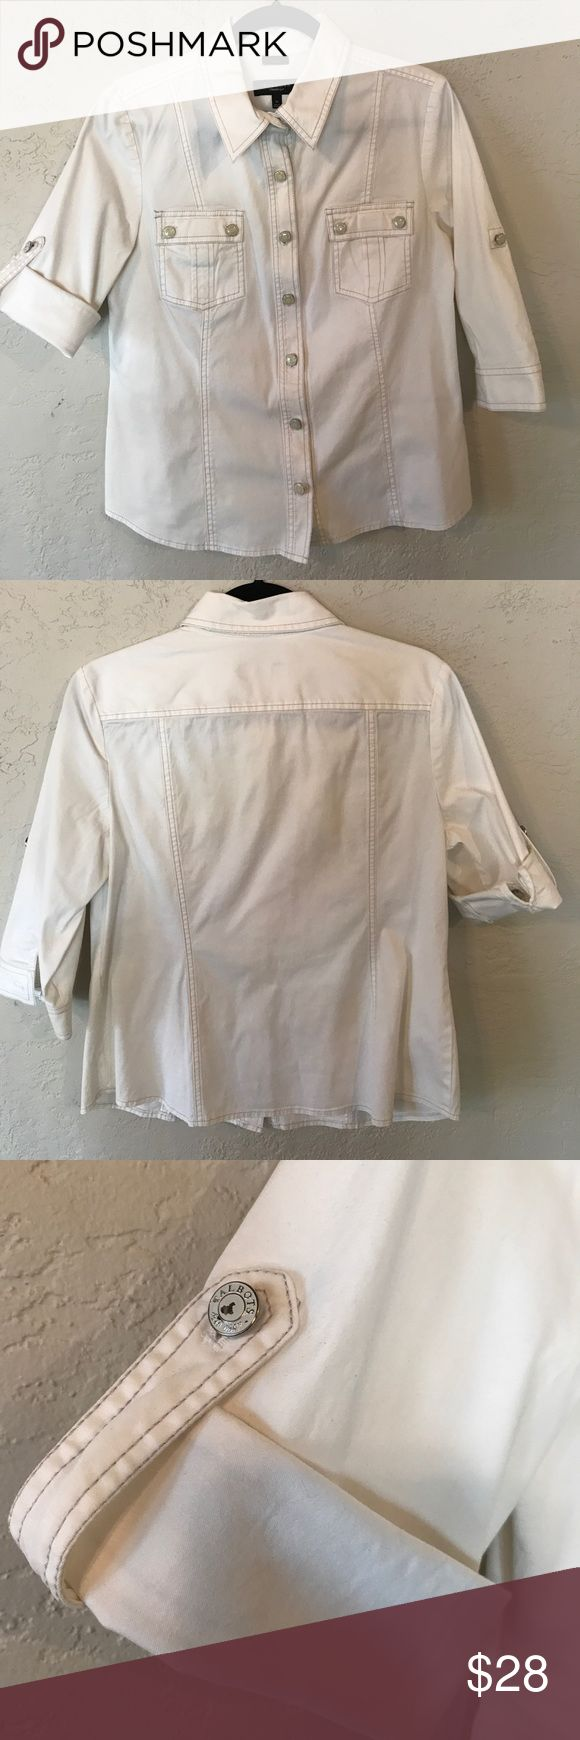 Talbots cargo shirt Talbots White cargo shirt with logo buttons. 99% cotton 2% spandex. Great details. Sleeves can be worn down or rolled up as shown. Hits at hip. Talbots Tops Blouses